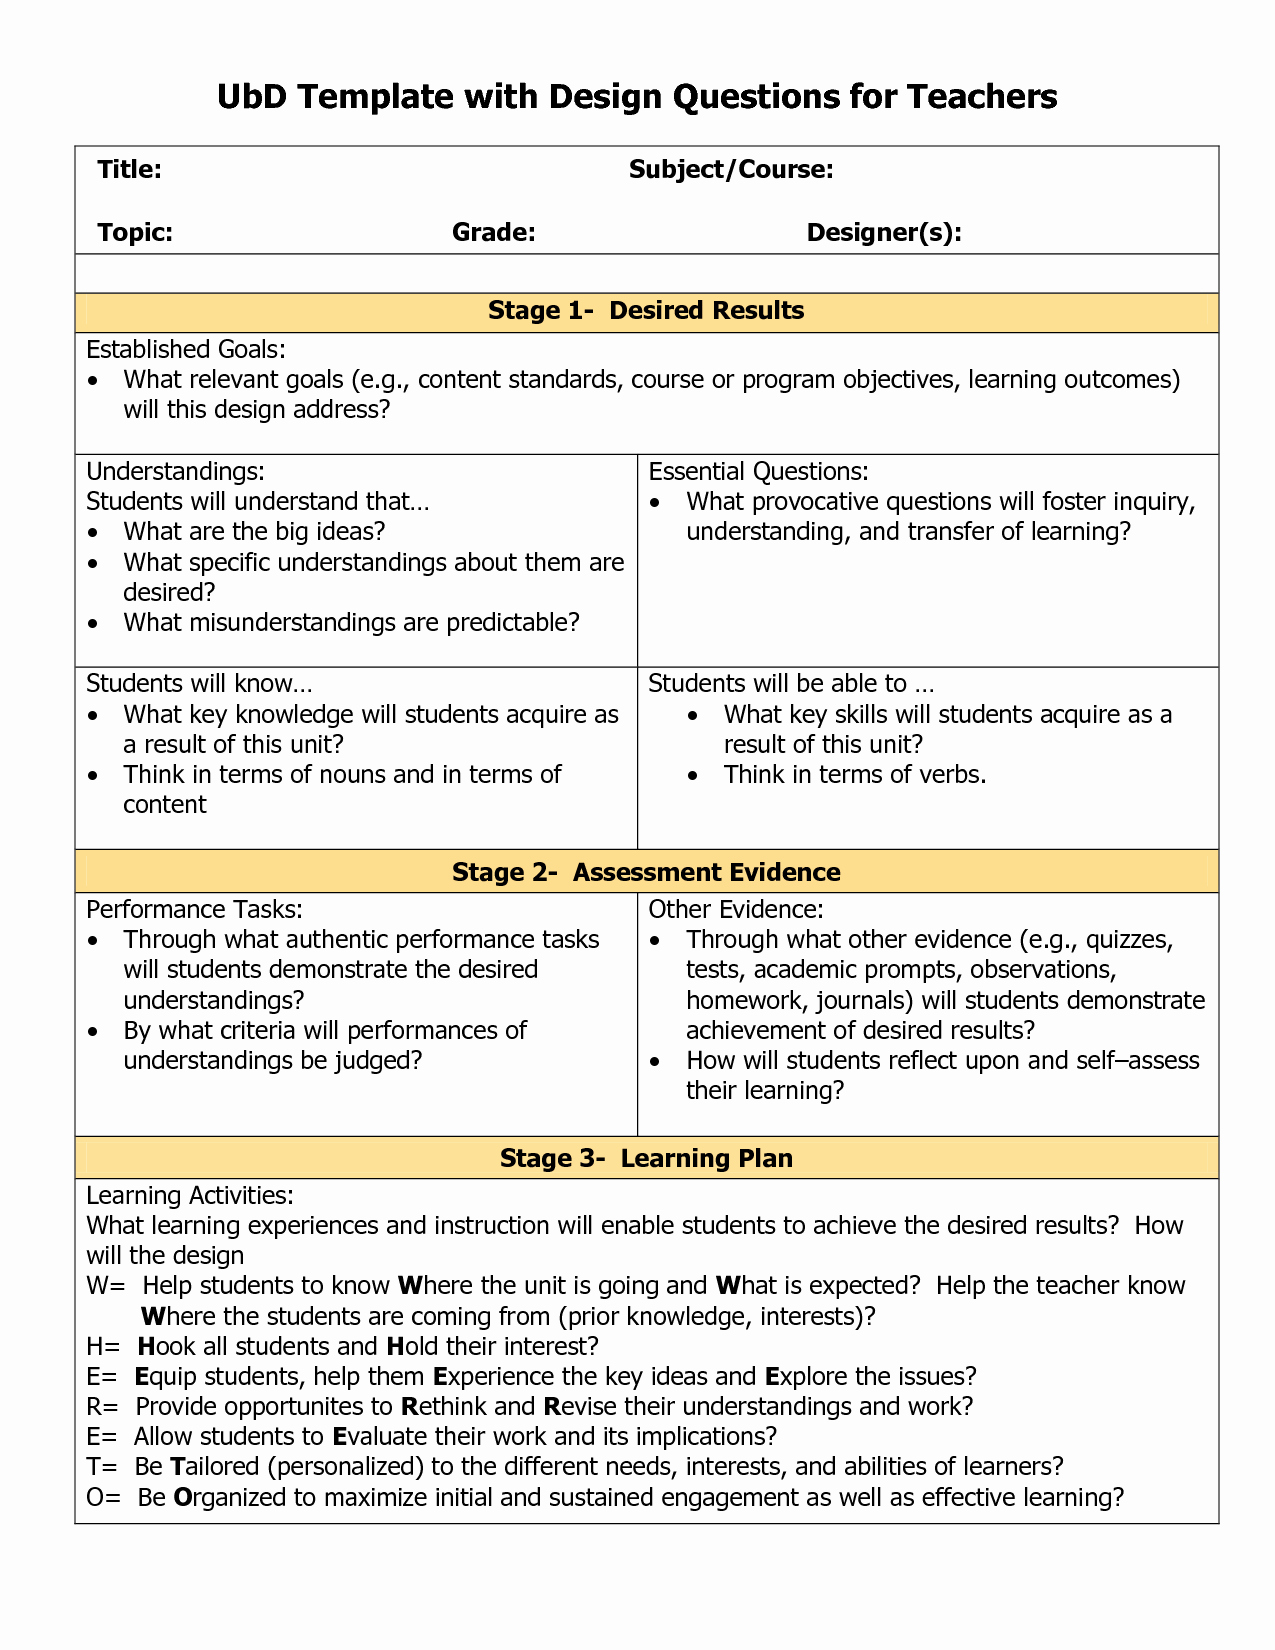 Unit Lesson Plan Template Lovely Blank Ubd Template Things for the Classroom